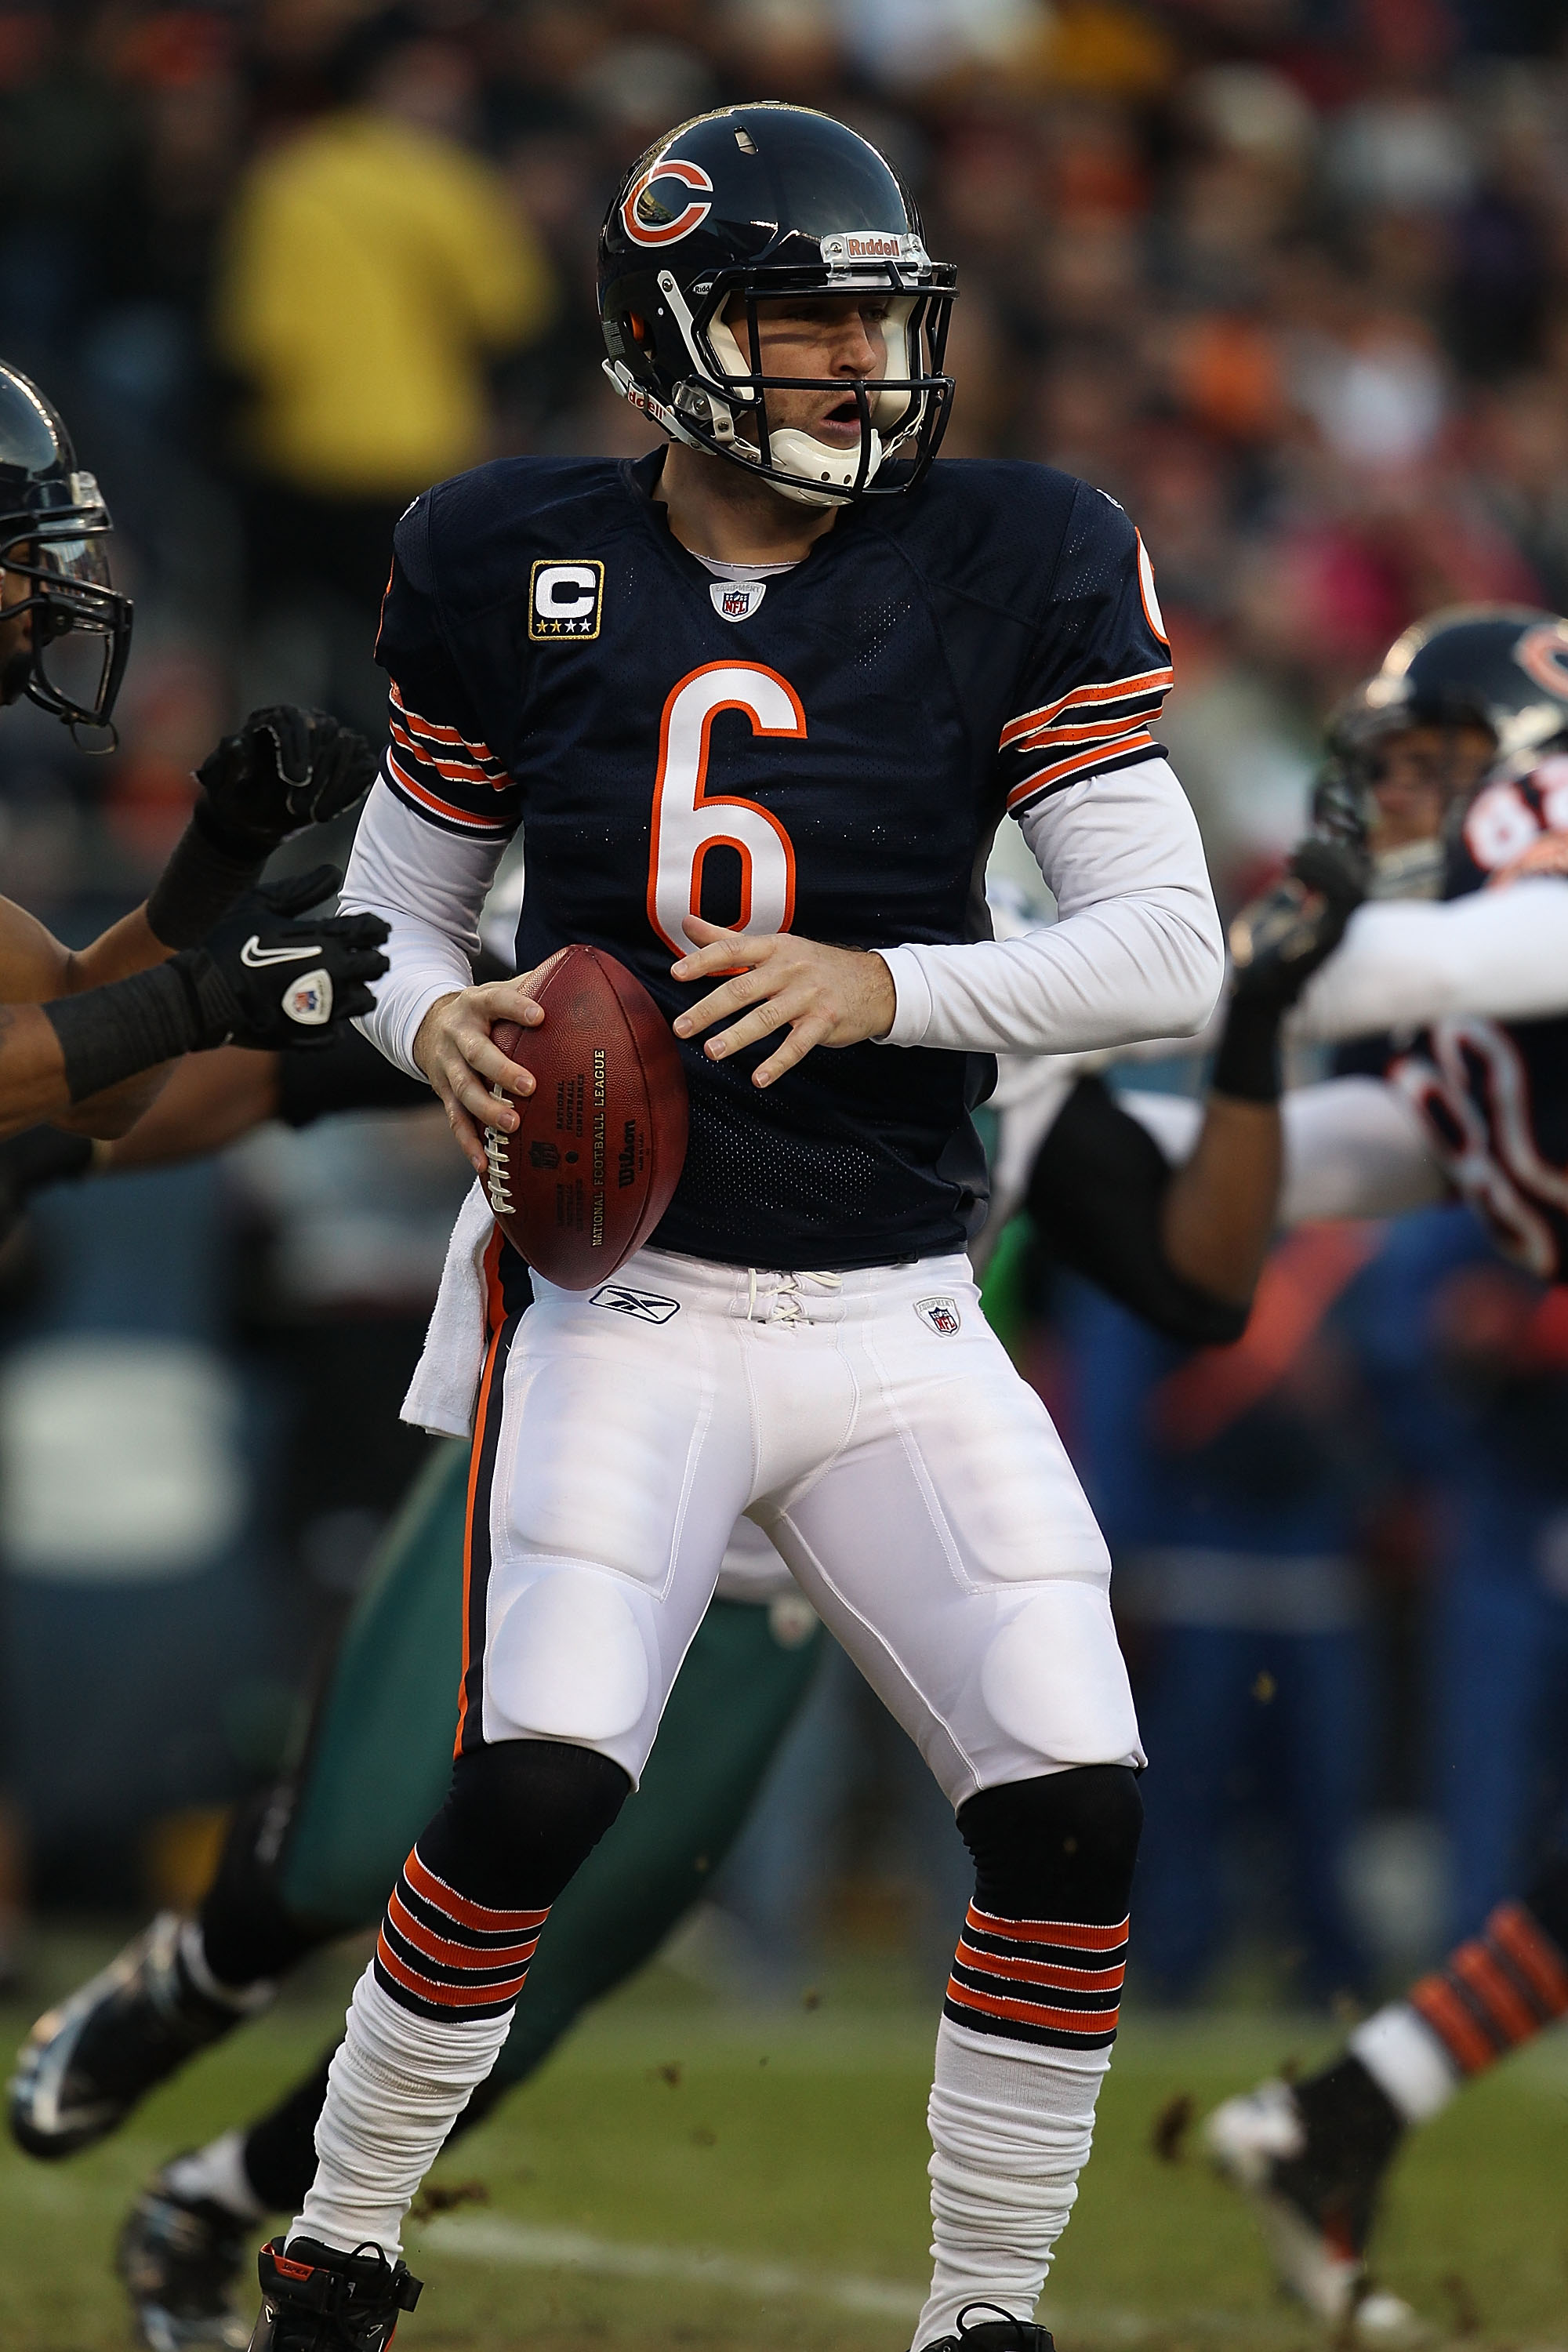 CHICAGO - NOVEMBER 28: Jay Cutler #6 of the Chicago Bears looks for a receiver against of the Philadelphia Eagles at Soldier Field on November 28, 2010 in Chicago, Illinois. The Bears defeated the Eagles 31-26. (Photo by Jonathan Daniel/Getty Images)